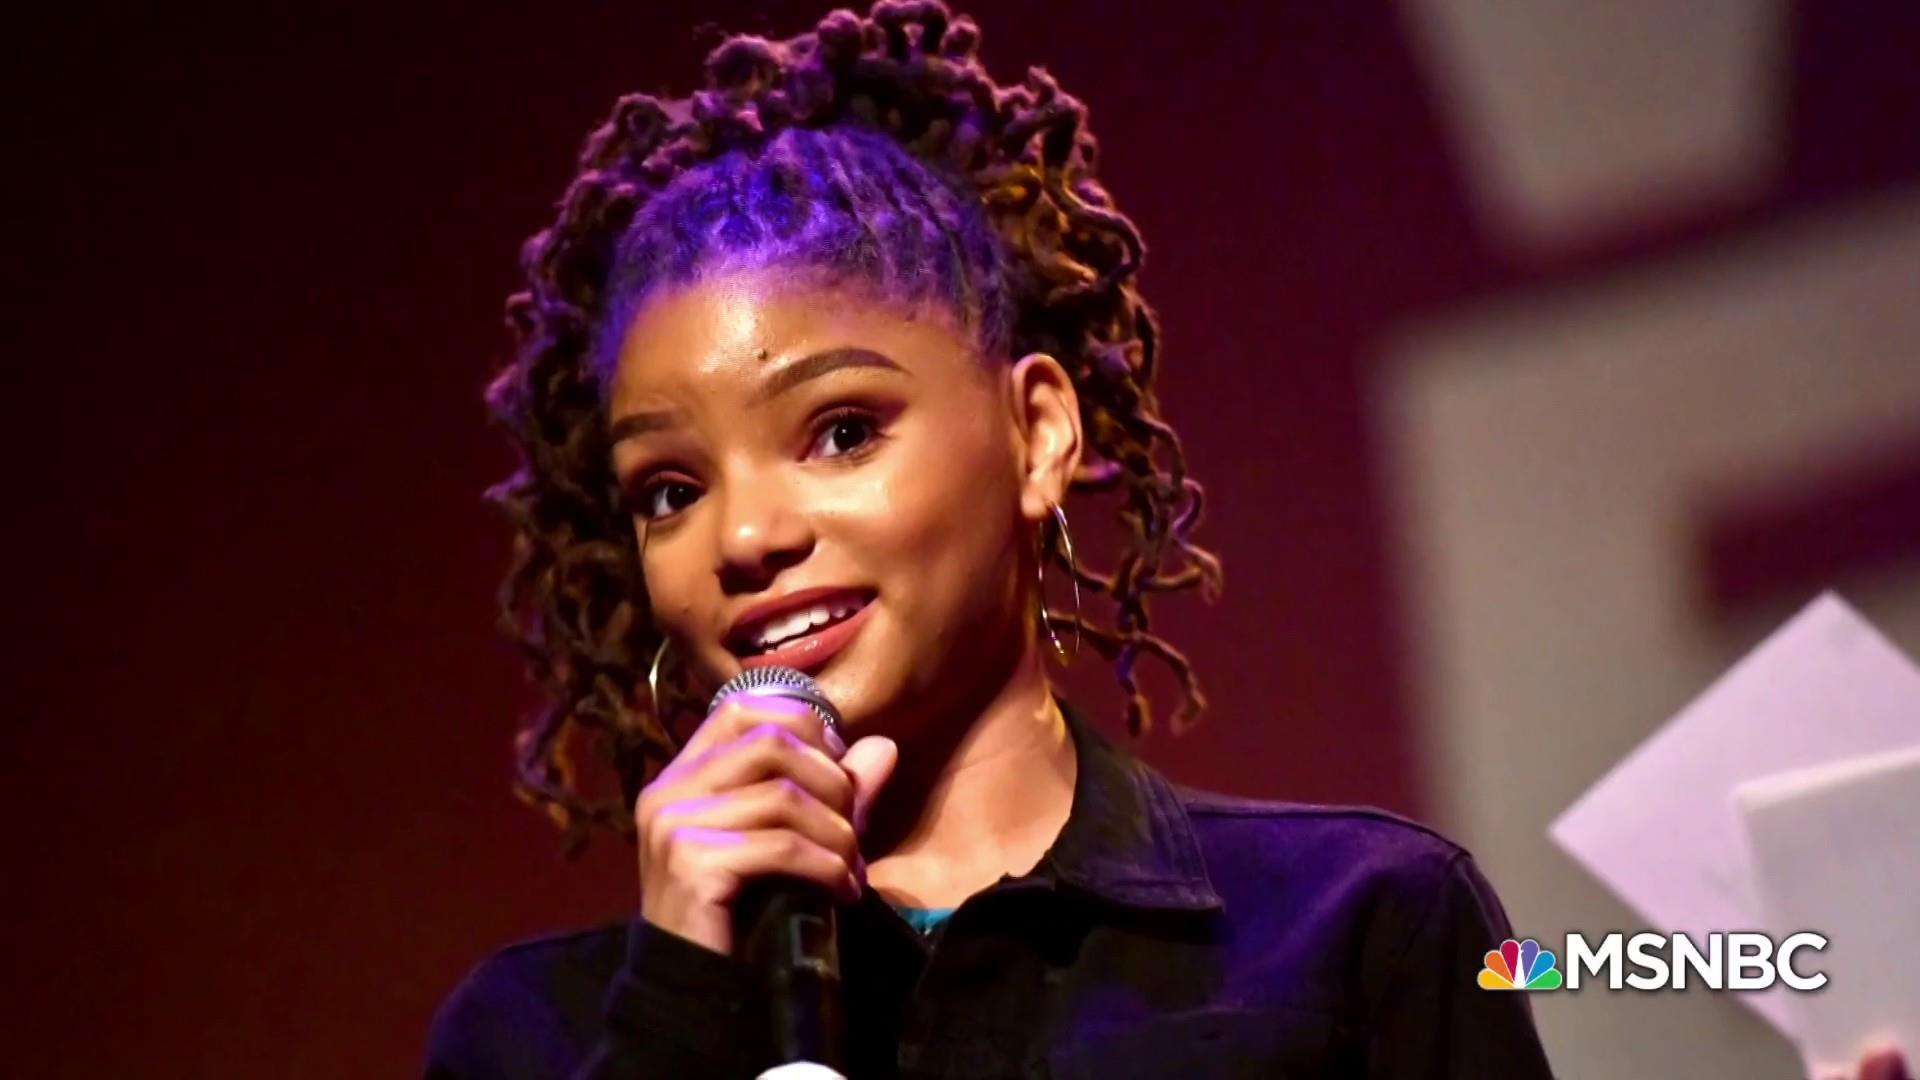 'She is fierce': Why Disney made the right choice casting Halle Bailey as 'The Little Mermaid'